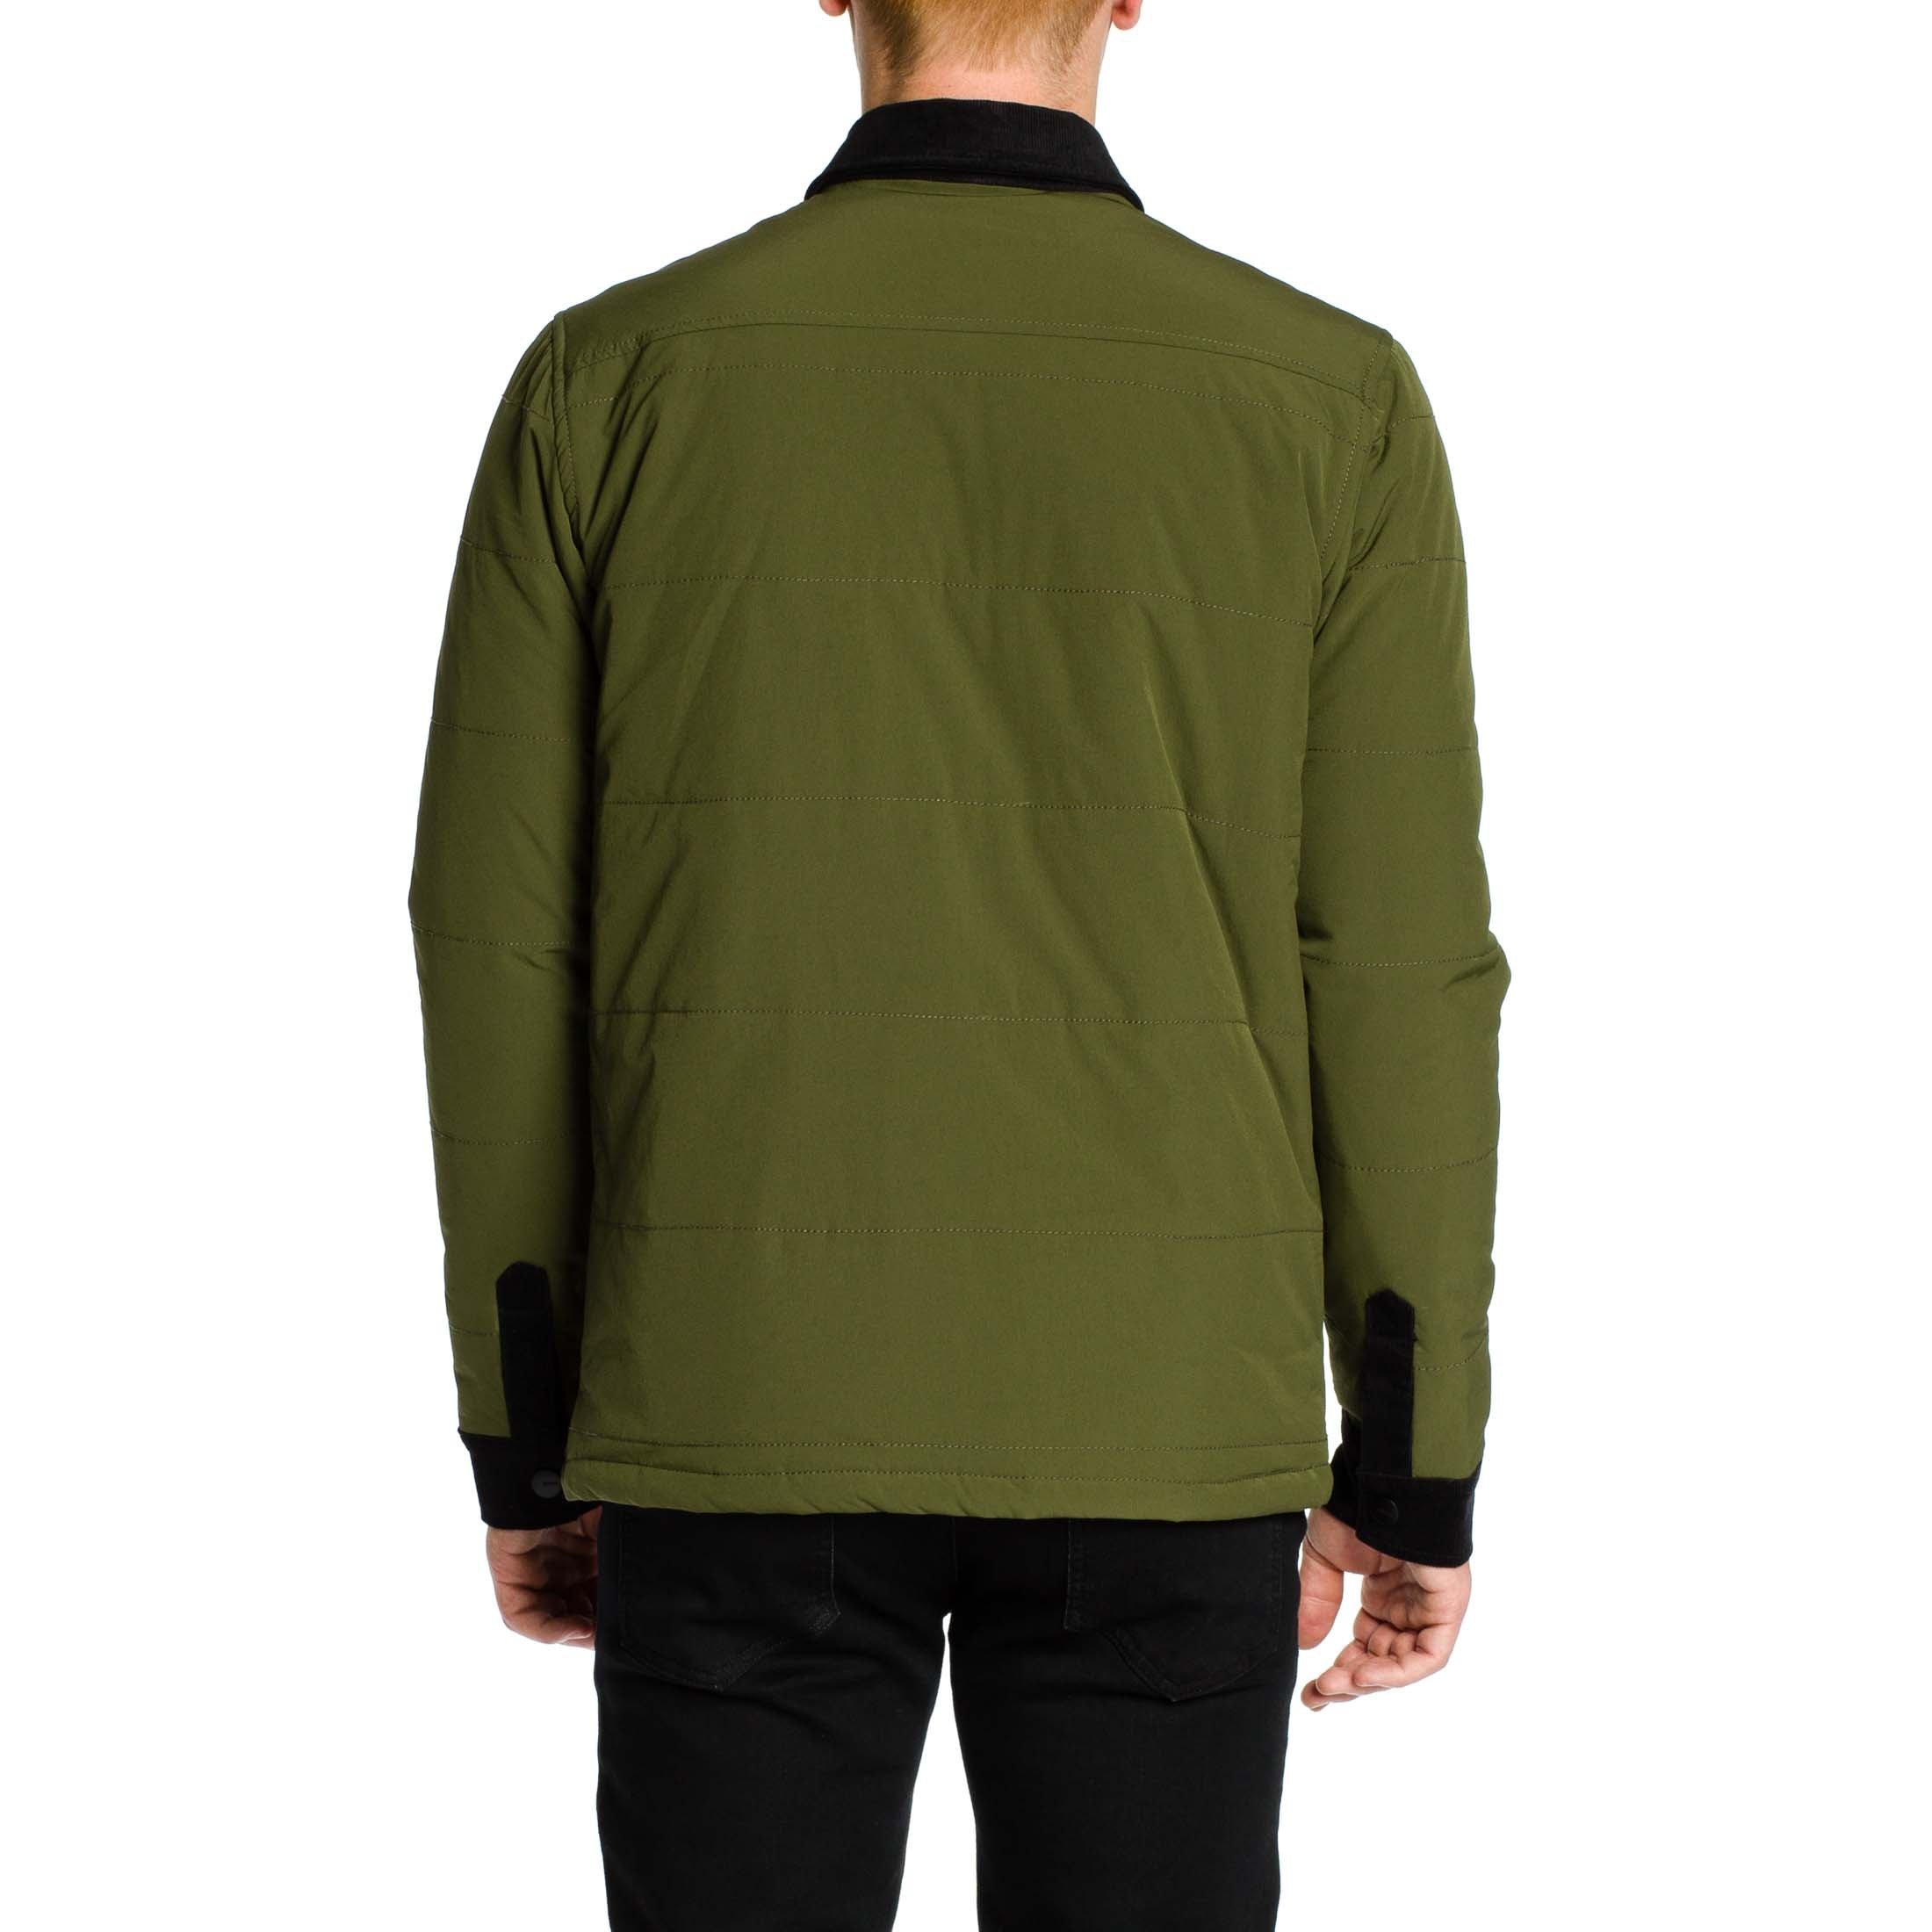 Ironwood Jacket - Military Green - Ezekiel Clothing